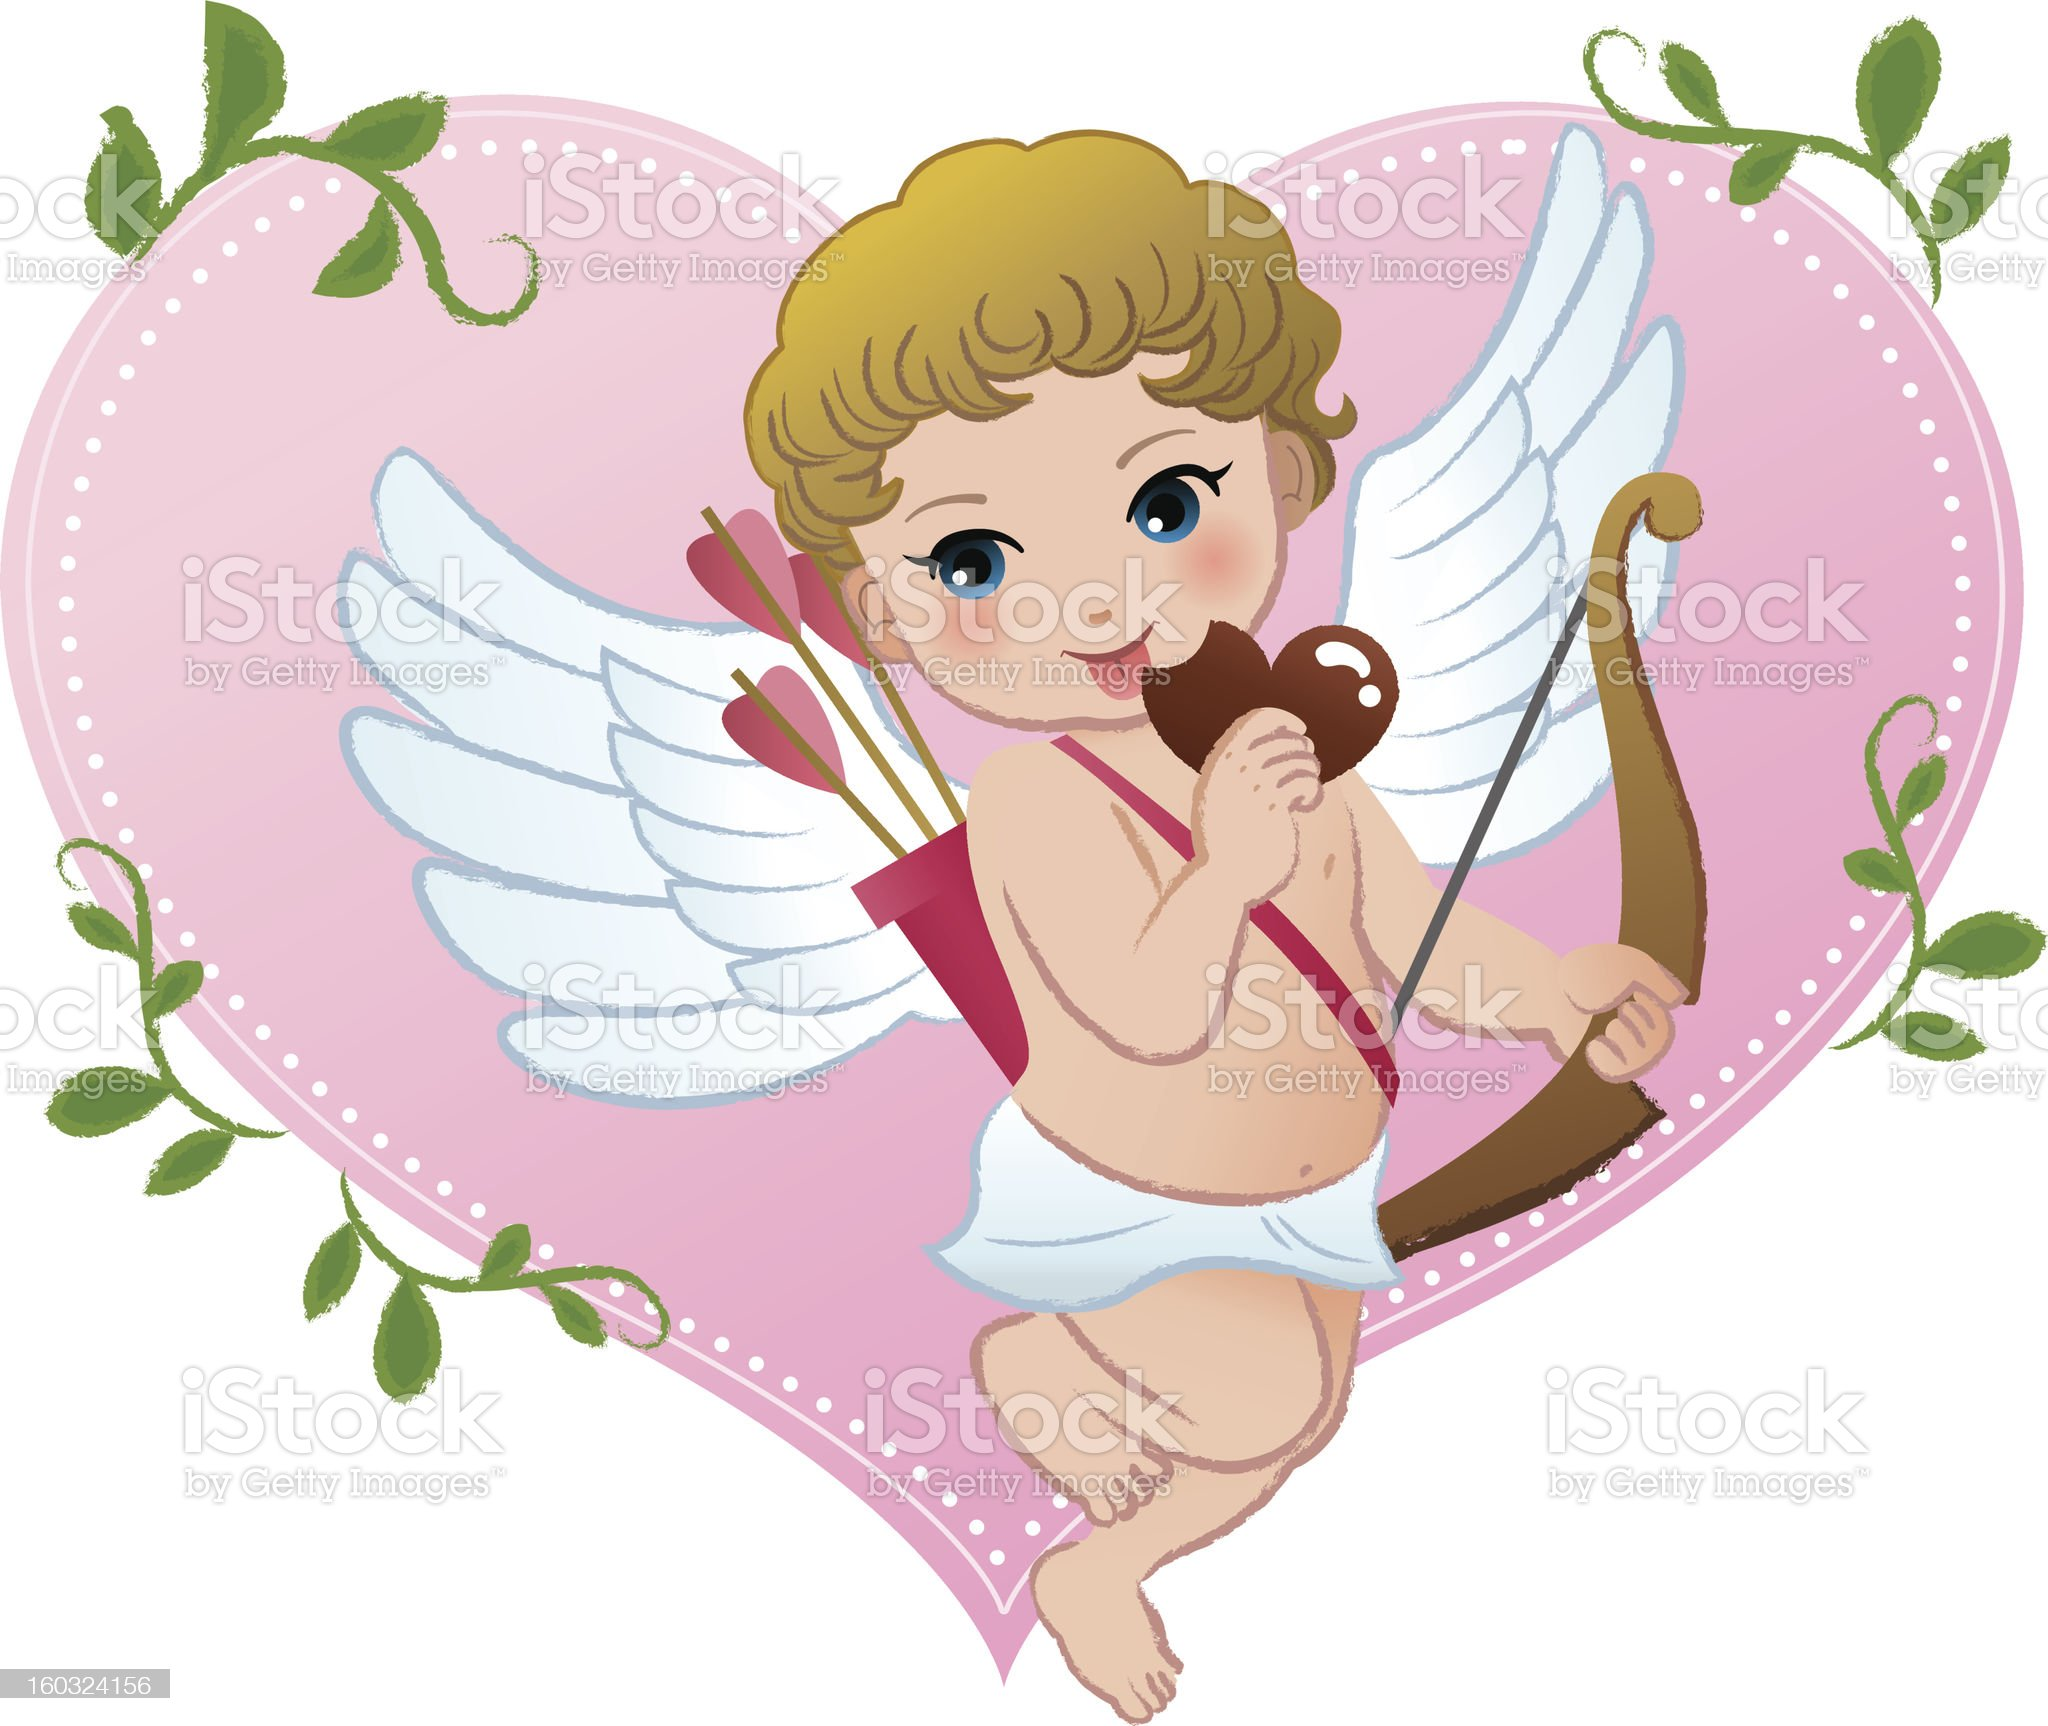 Mischief cupid snibbling heart shaped chocolate royalty-free stock vector art